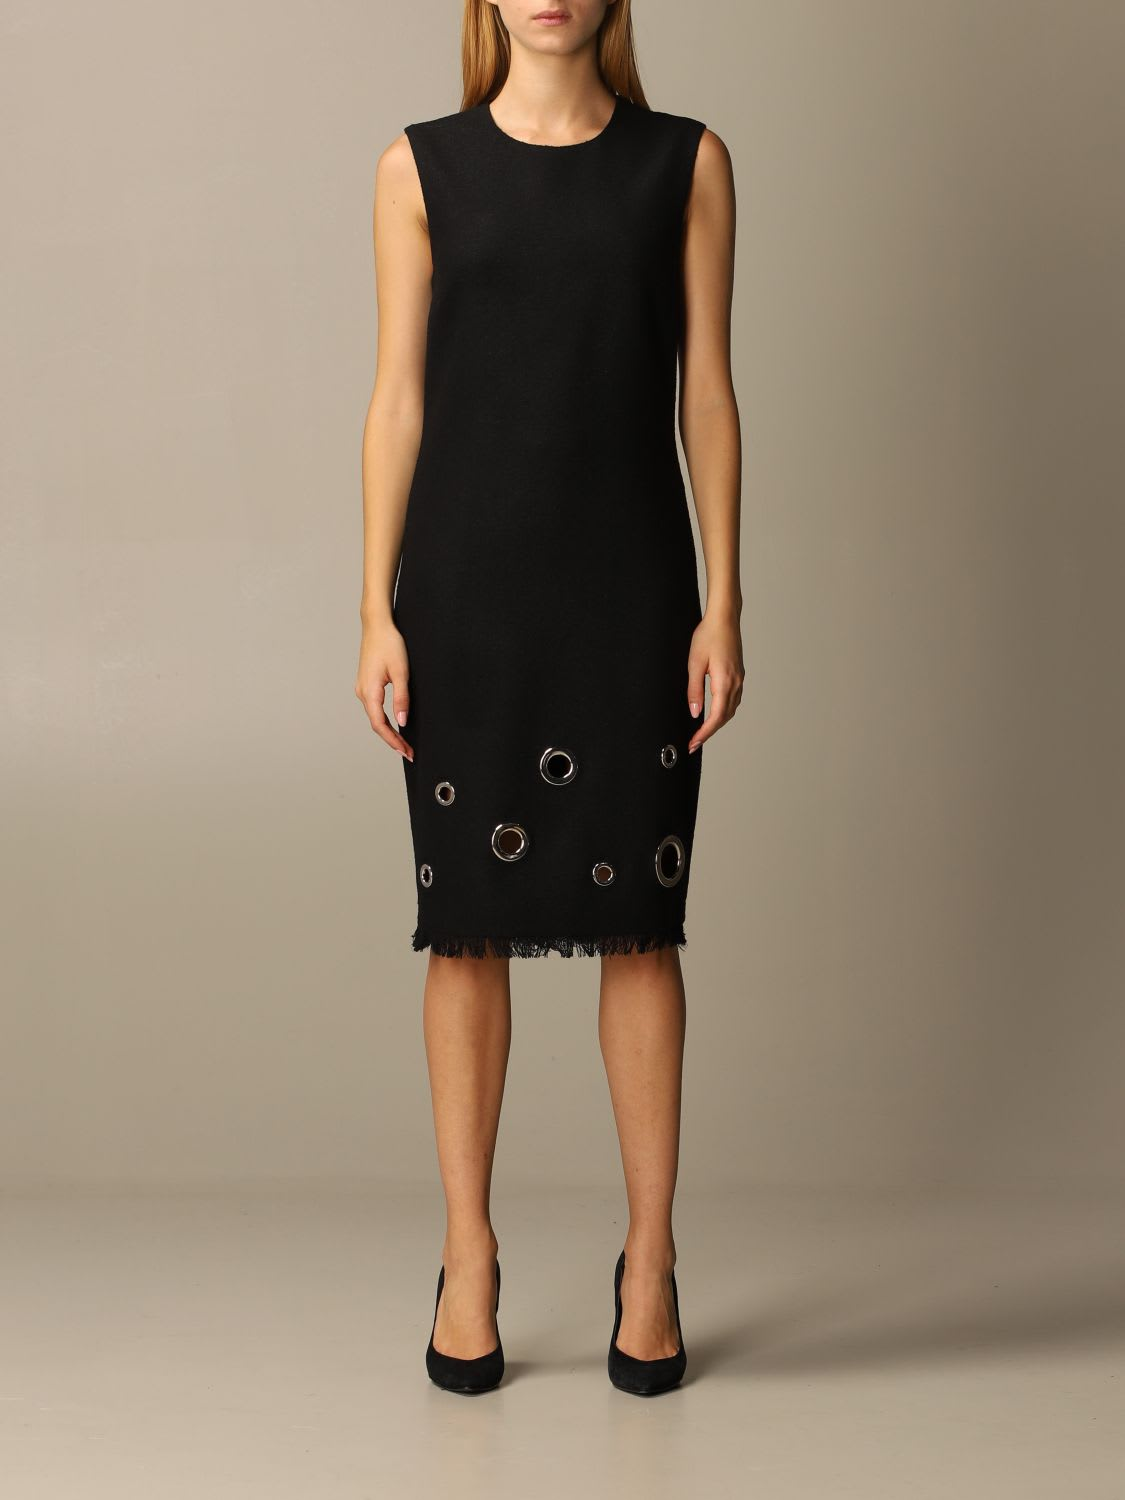 Boutique Moschino Dress Boutique Moschino Sheath Dress With Maxi Eyelets